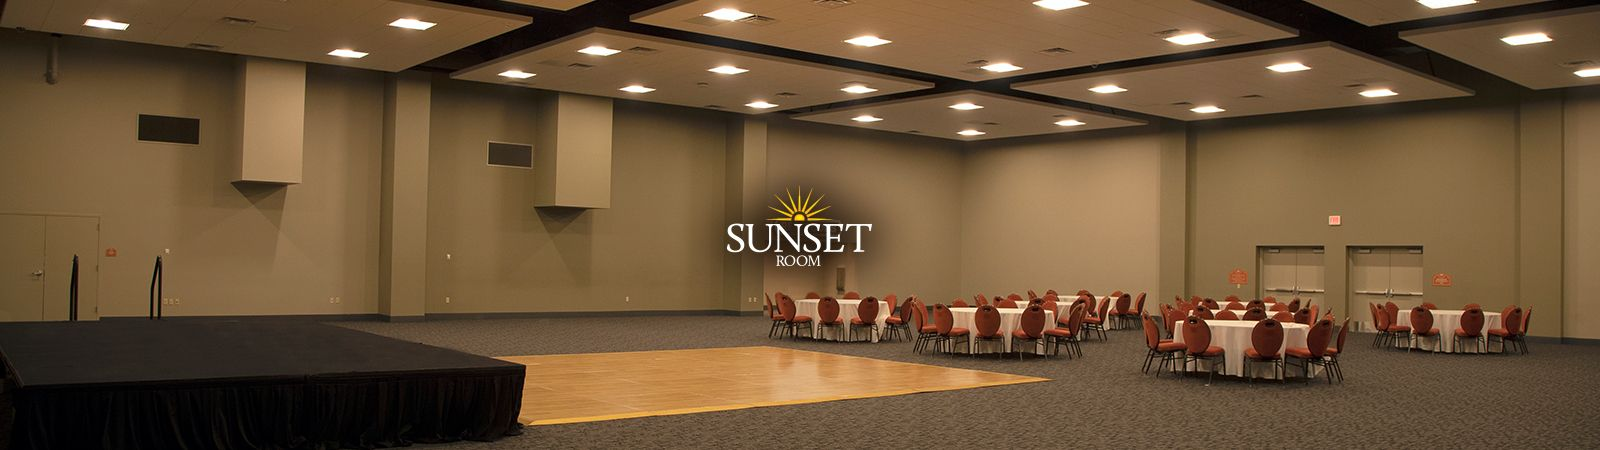 Sunset Room at Casino of the Sun